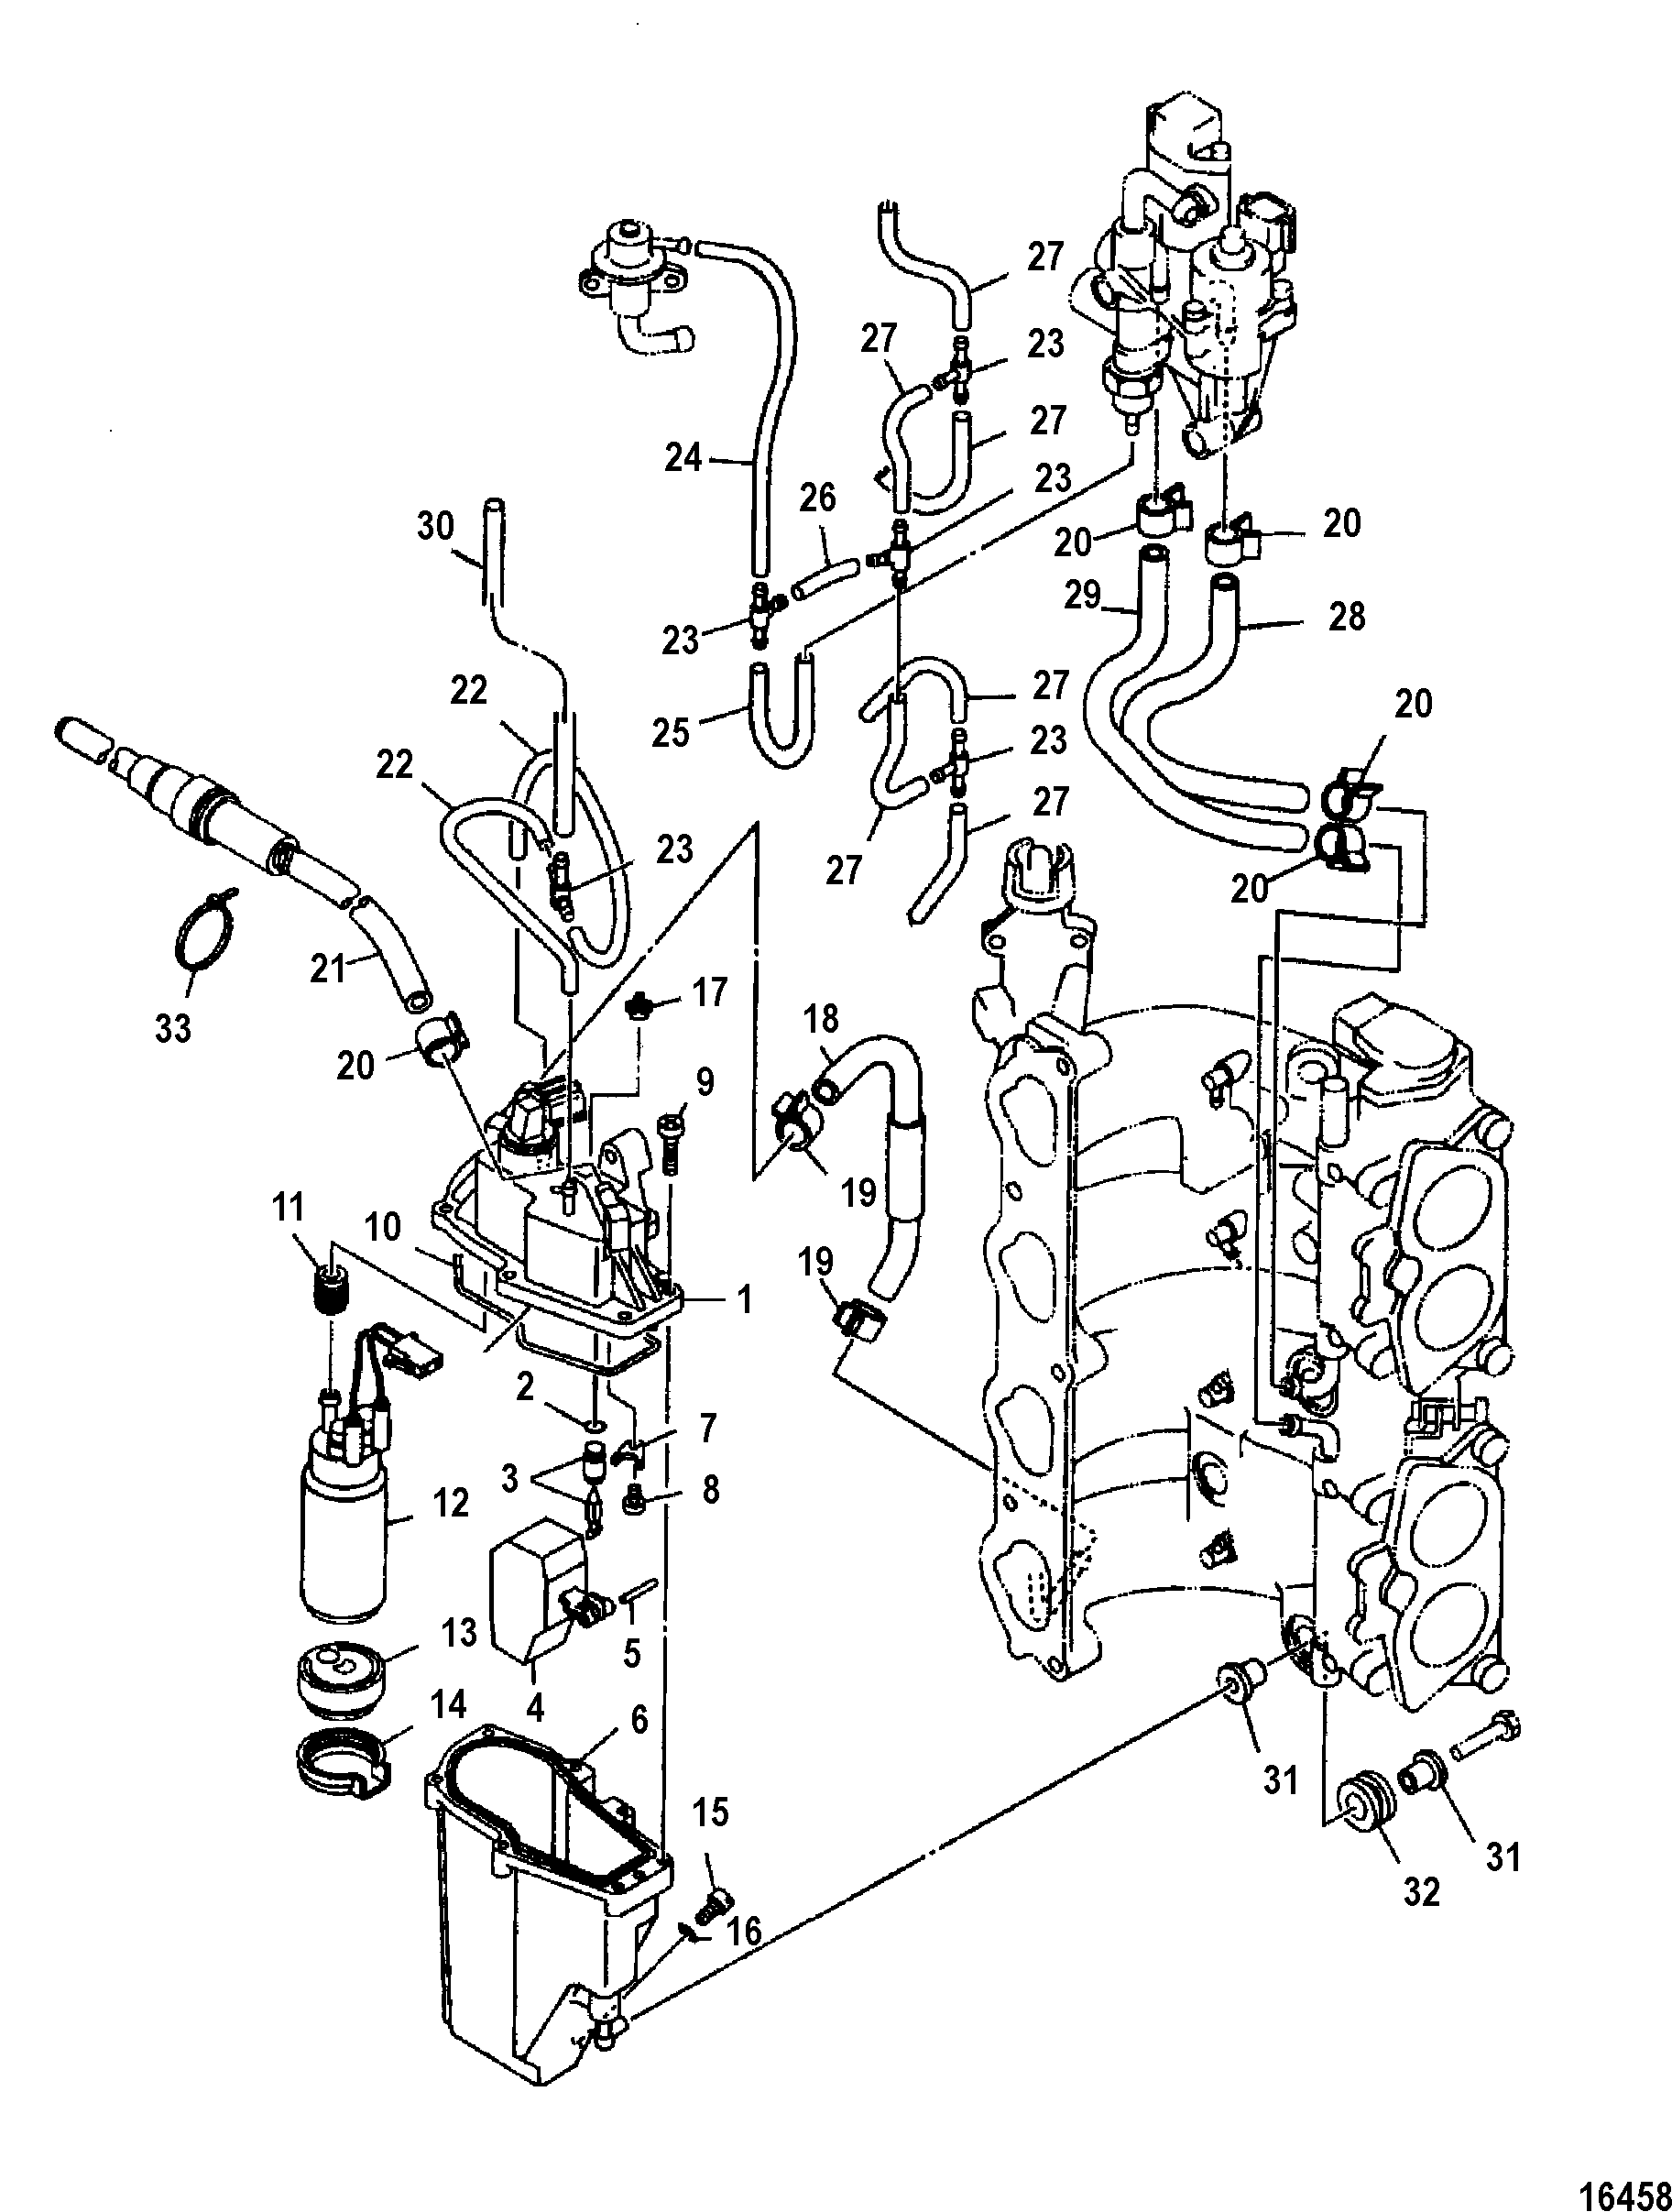 hight resolution of 115 mercury outboard fuel system diagram 35 evinrude wiring diagram 60 hp evinrude outboard diagrams